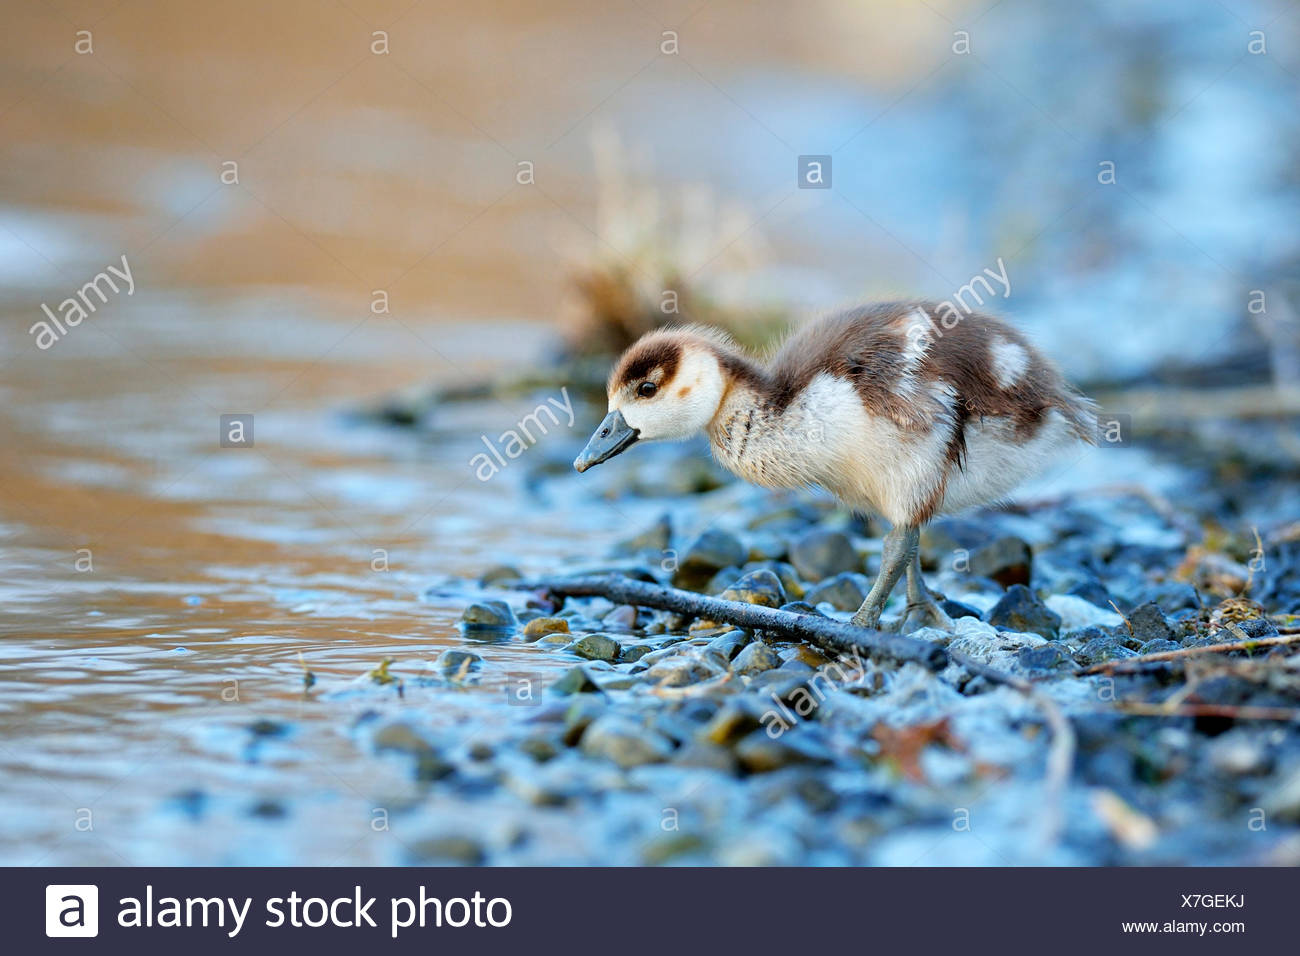 Egyptian goose (Alopochen aegyptiacus) chick, foraging by the water, Zug, Canton of Zug, Switzerland - Stock Image